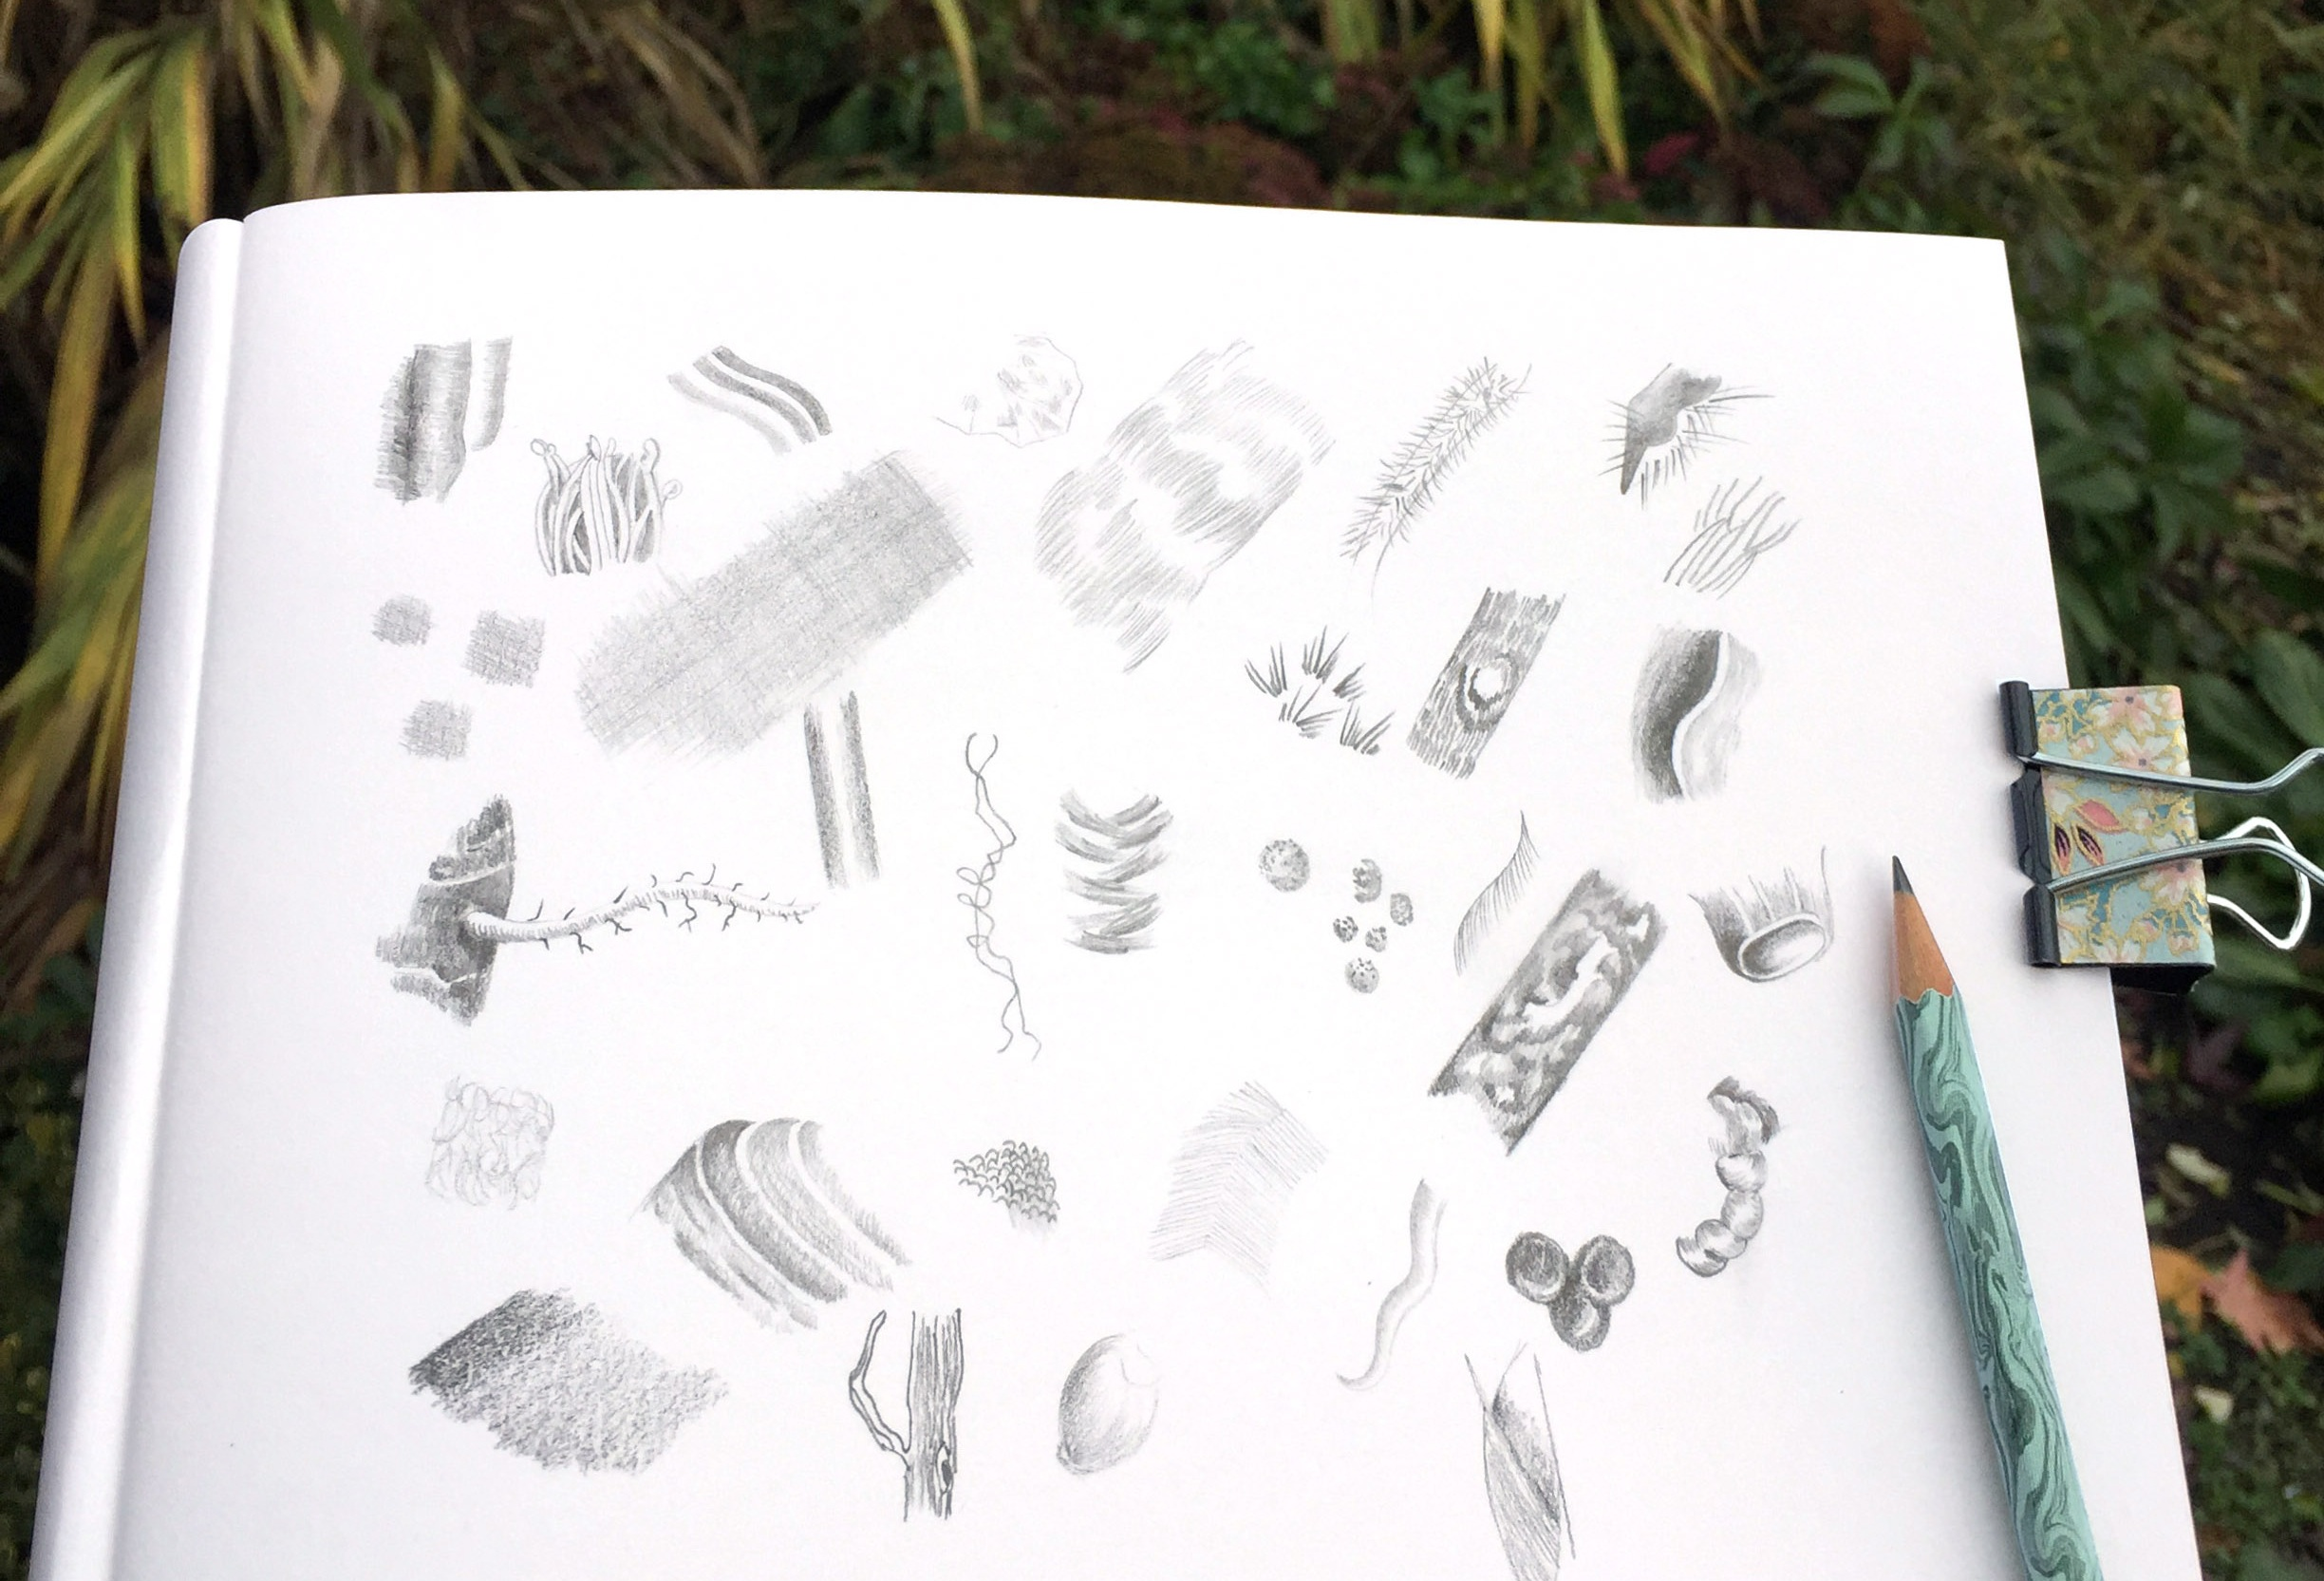 Textures from nature: mark making with pencil.